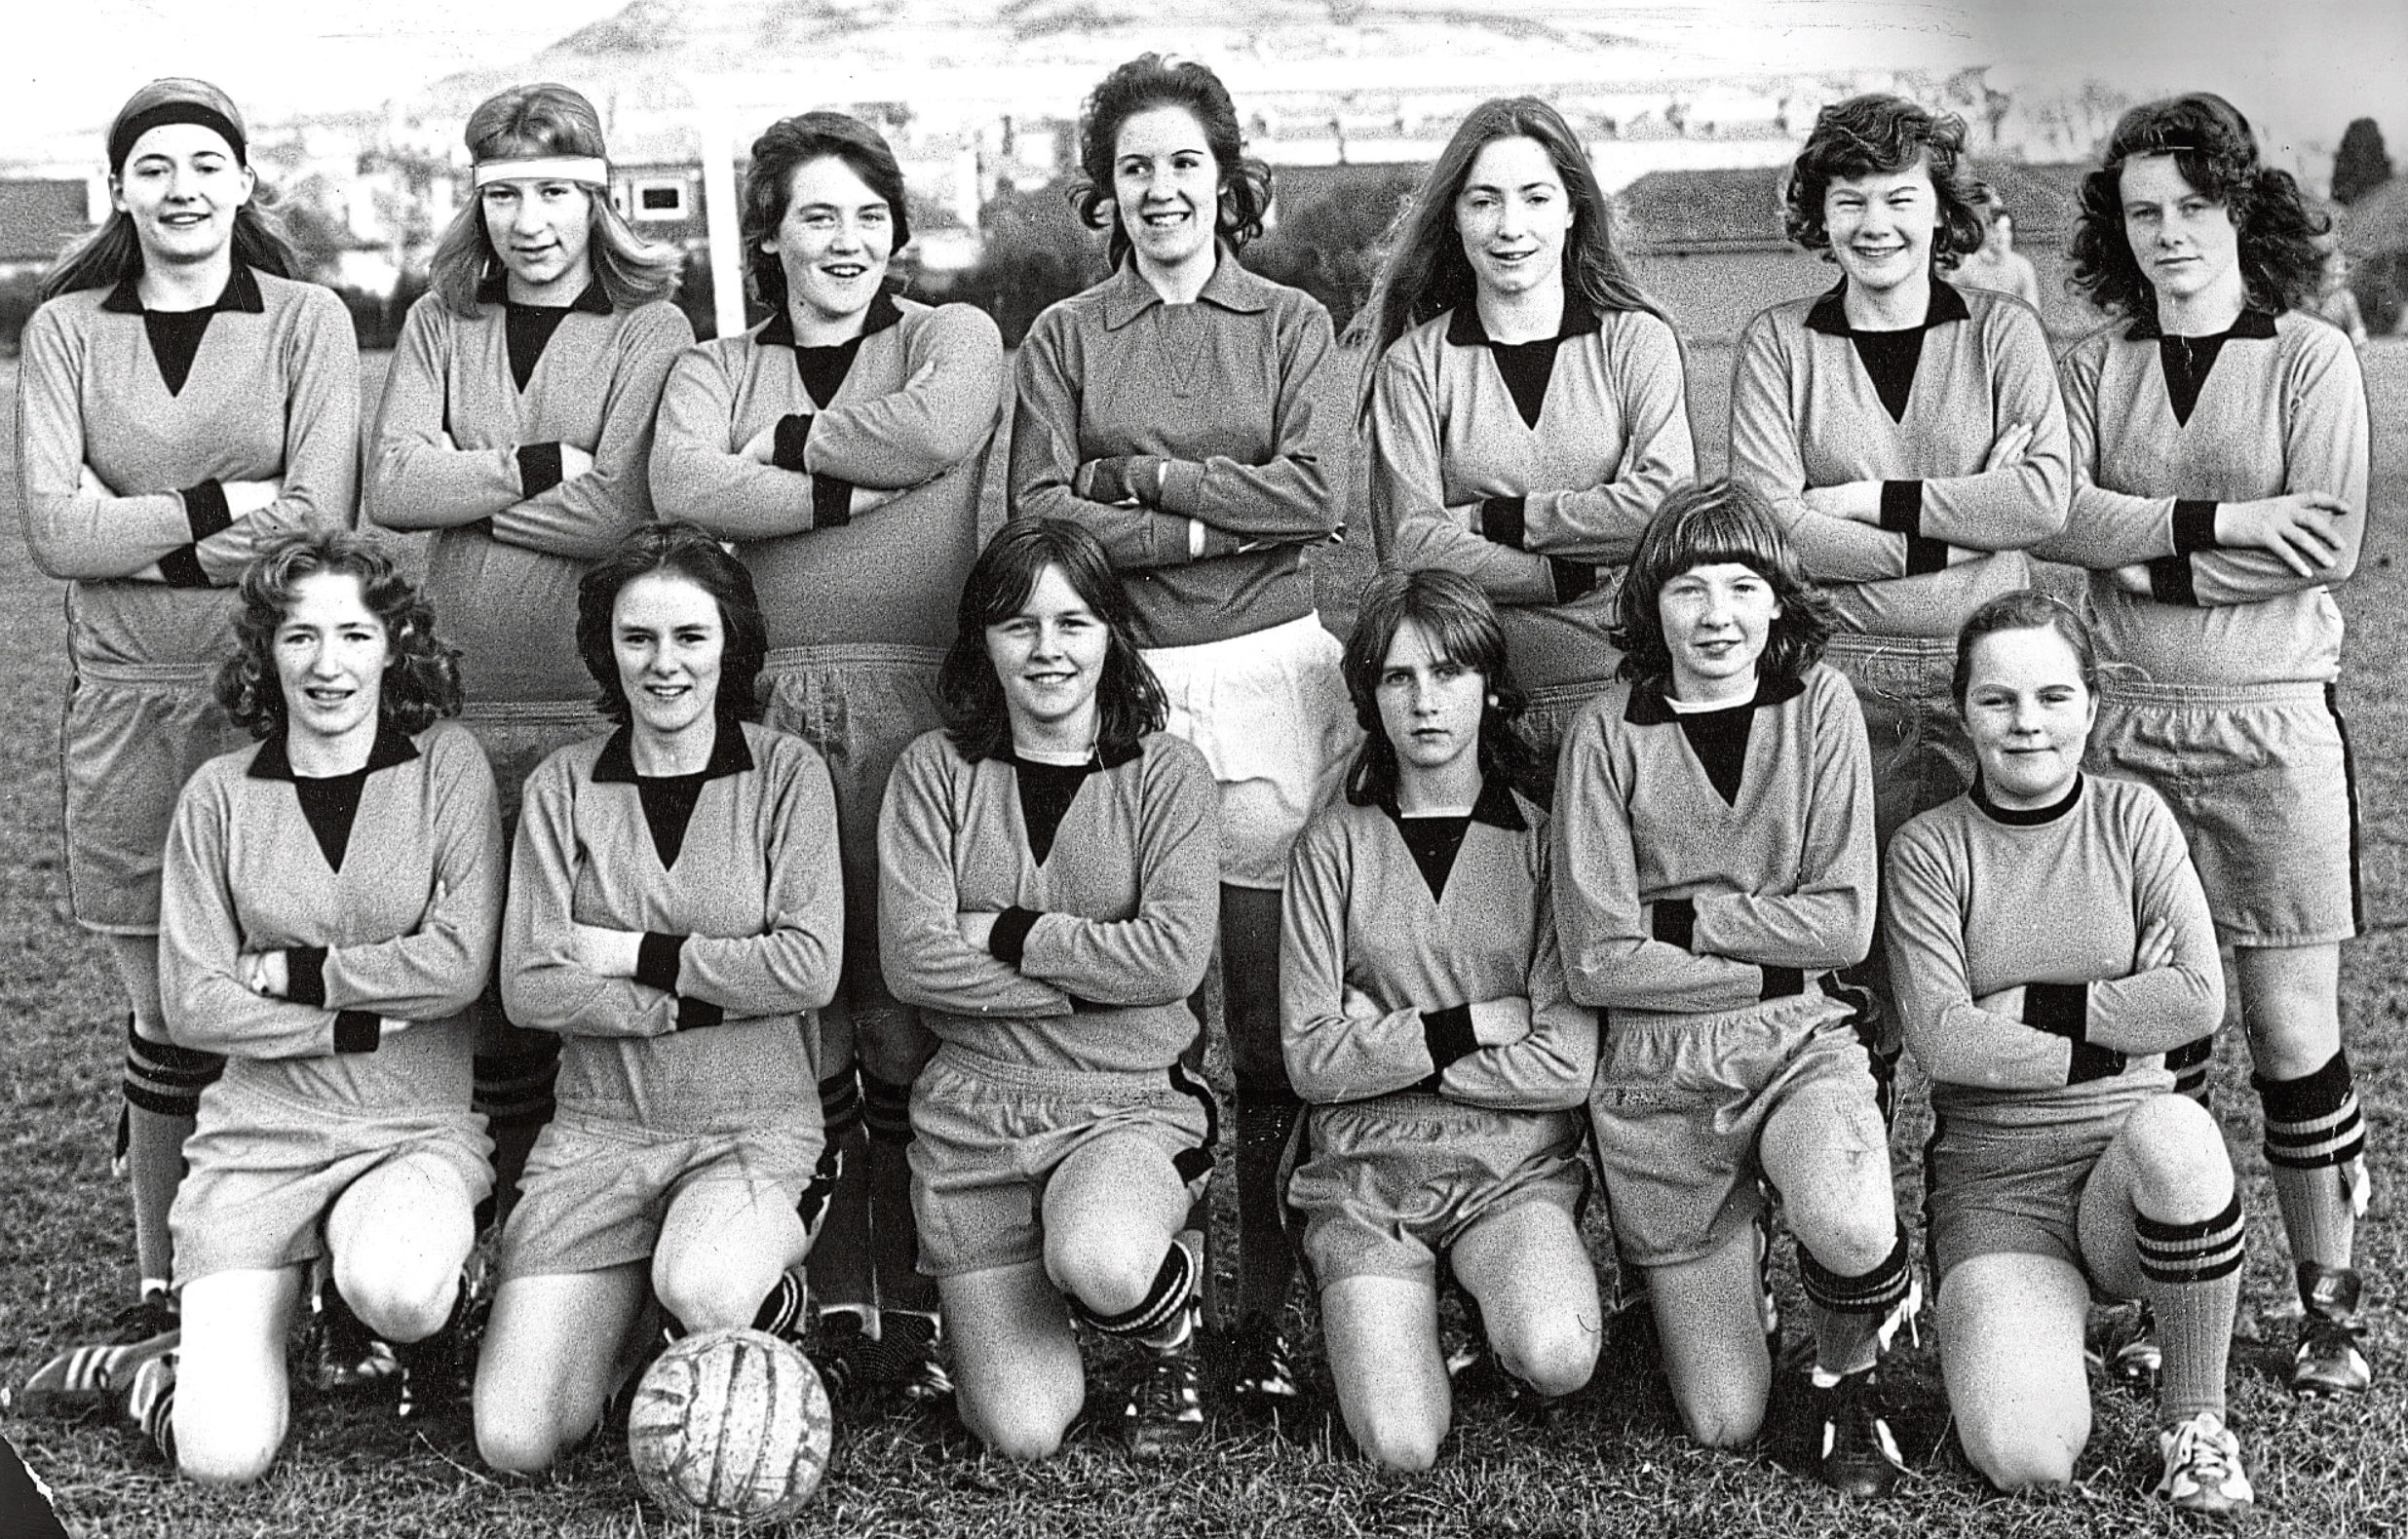 Mary O'Neill is in this very successful Dundee Strikers Ladies FC photgraph from September 1987.  Back row (from left) –  Joan Fleming, Betty Ure, Jennifer Ritchie, Mandy Doogan, Shona Giblin, Linda Arbuckle, Joan Munro, Linda Spalding.  Front row – Colleen Dailly, Jean Smith, Mary O'Neill, Roslynn Gourlay, Jacqueline Anderson, Christine Flanagan. See main story